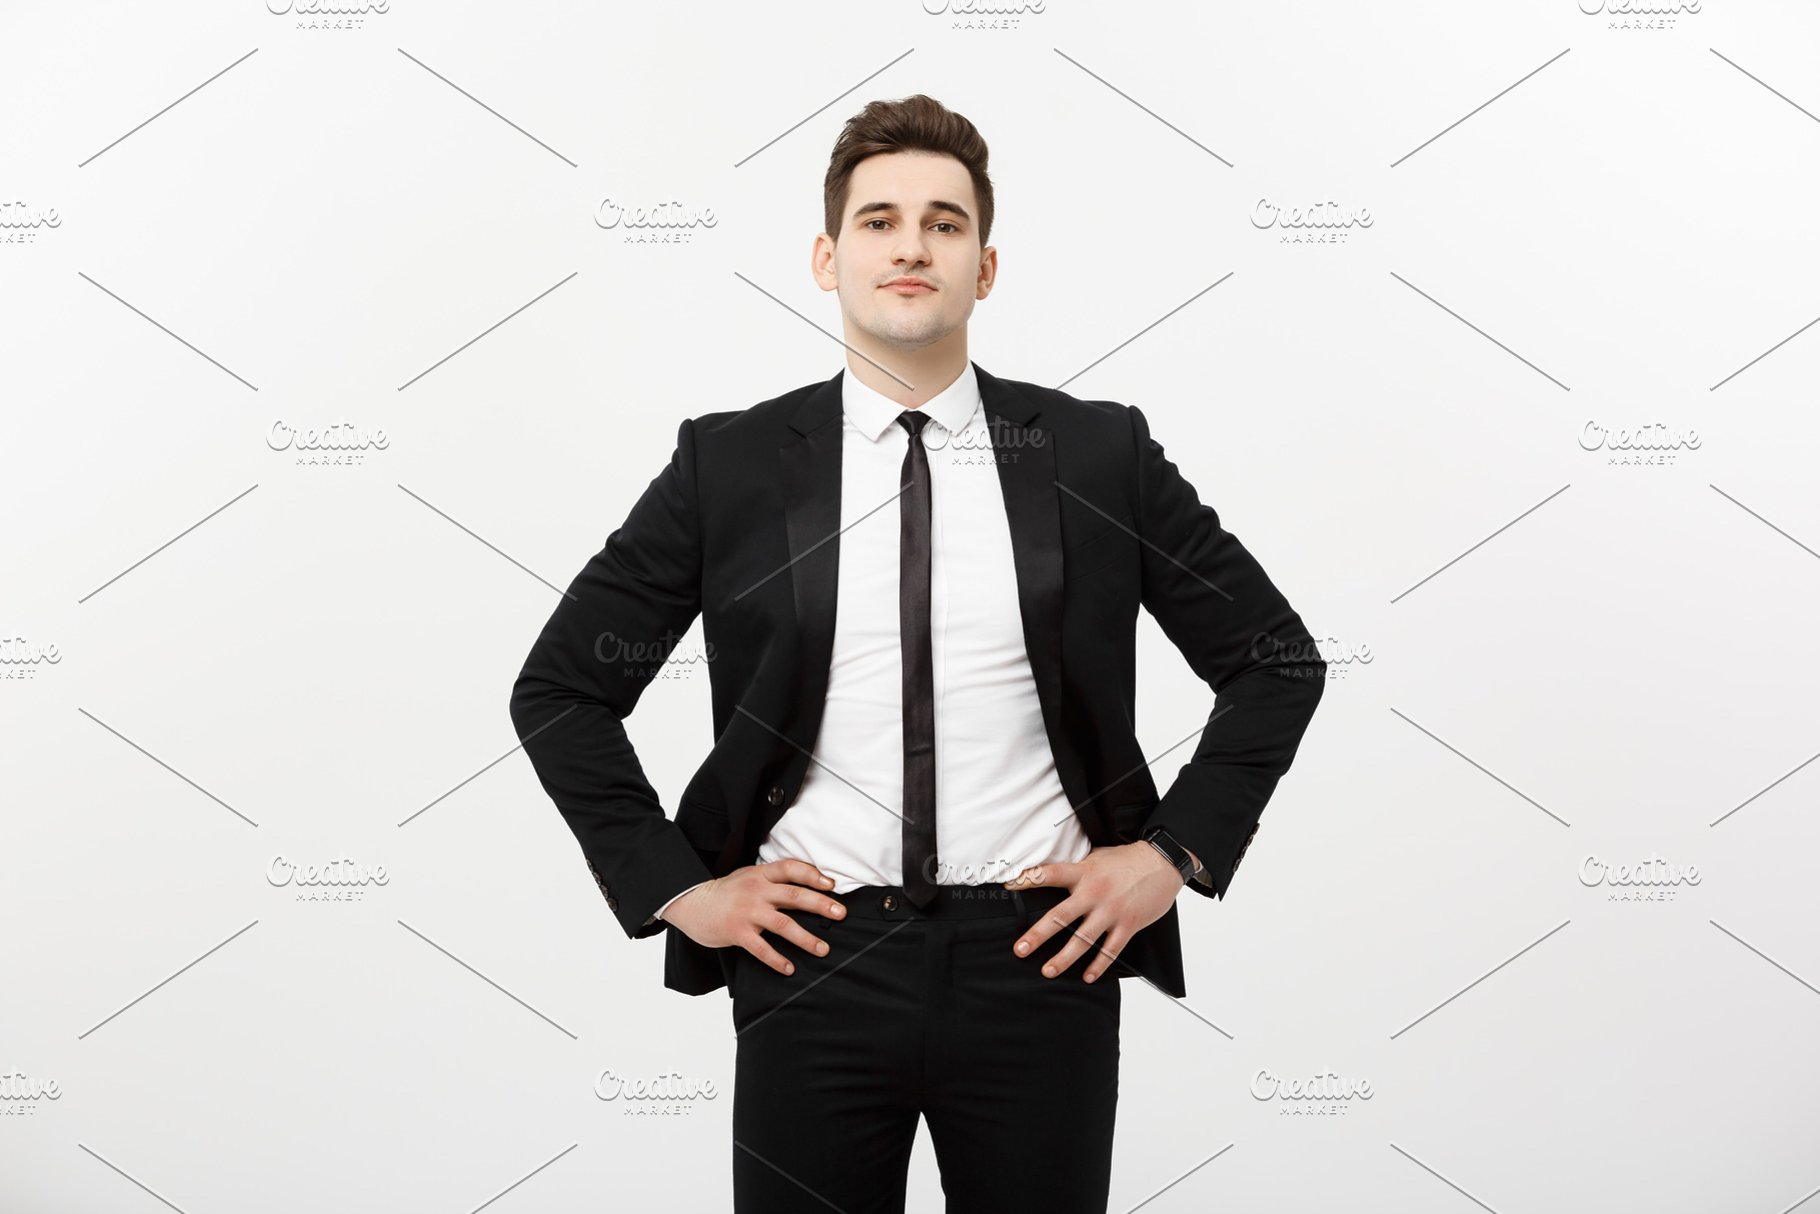 e7706f64999 Business Concept  Handsome Man Happy Smile Young Handsome Guy in ...